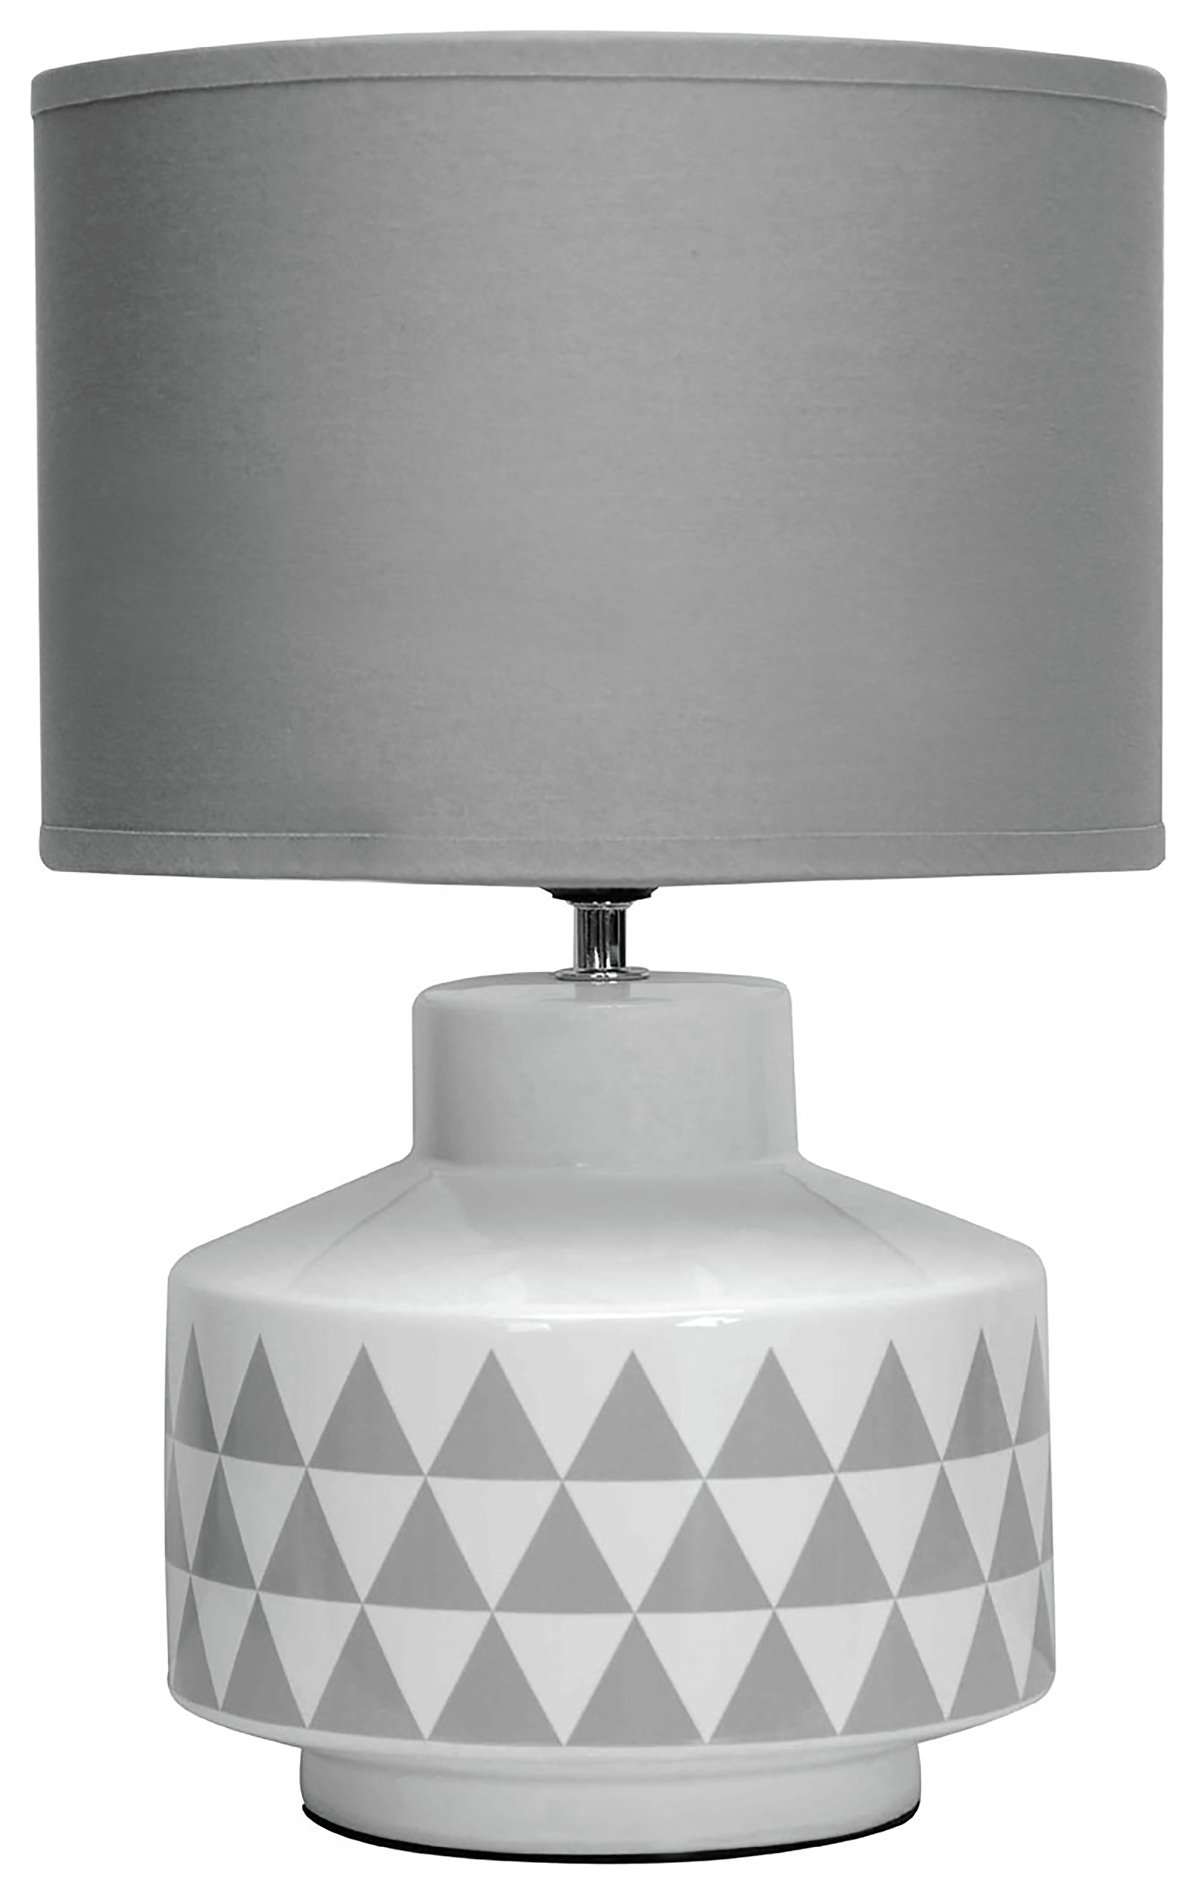 Image of Wylie - Ceramic & Fabric - Table Lamp - White & Grey